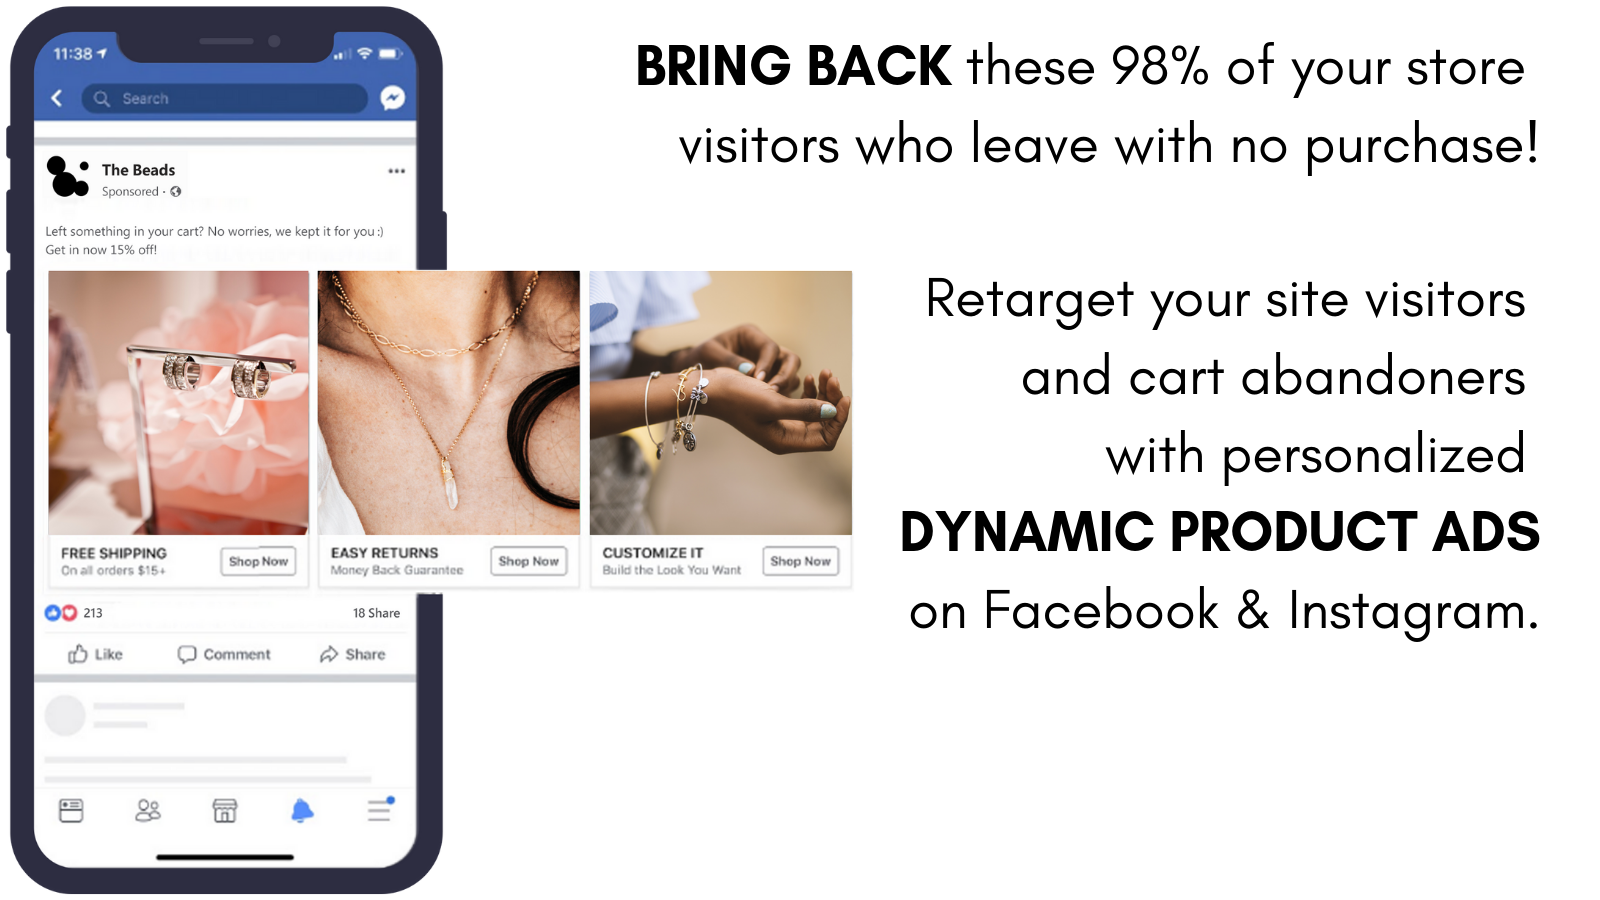 Regular Dynamic Product Ads on Facebook and Instagram